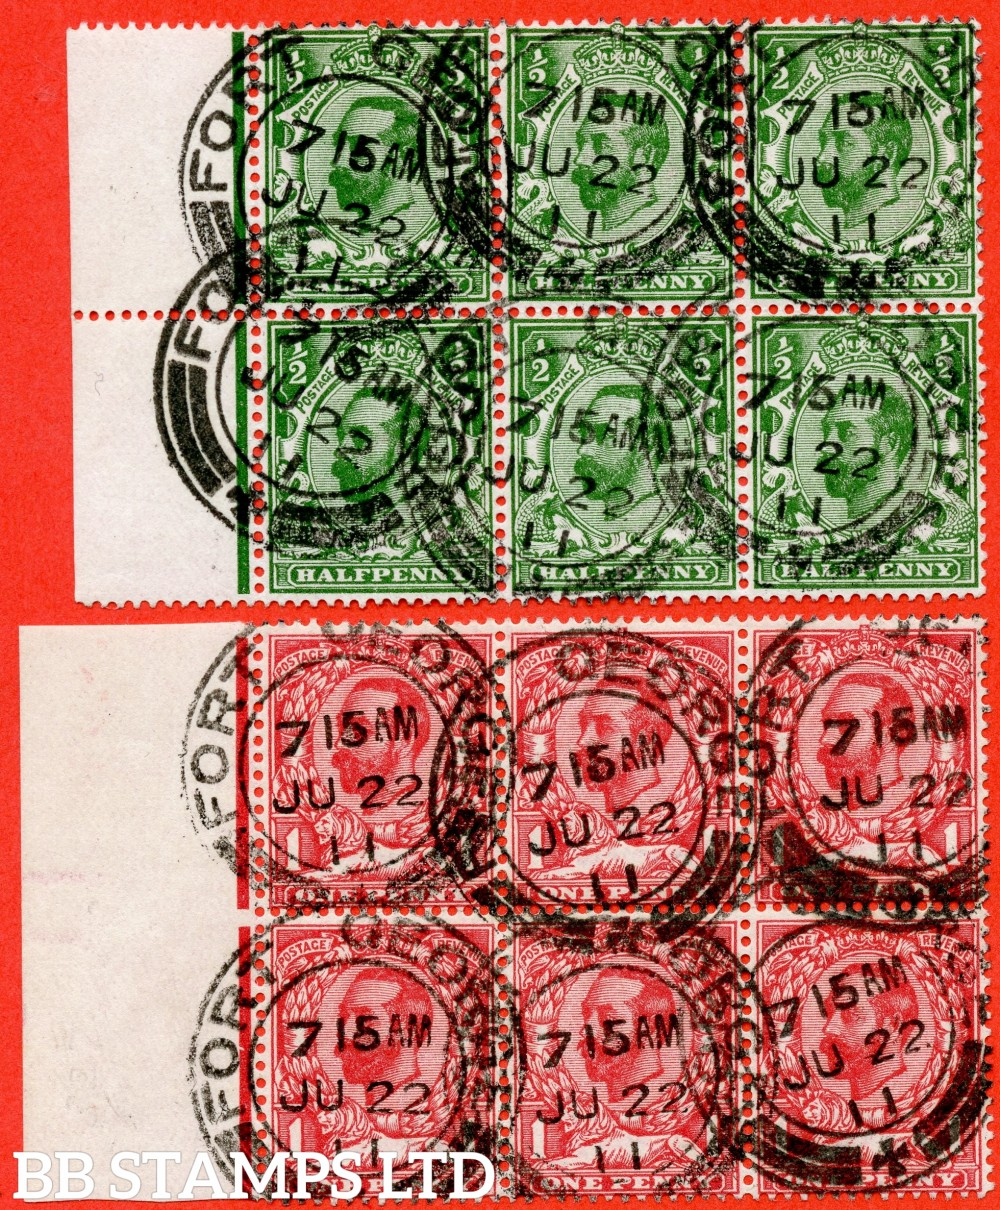 "SG. 322 and 327. Set in matching left hand marginal blocks of 6 cancelled by FIRST DAY OF ISSUE "" 22nd June 1911 FORT GEORGE "" CDS's. A remarkable matched pair."